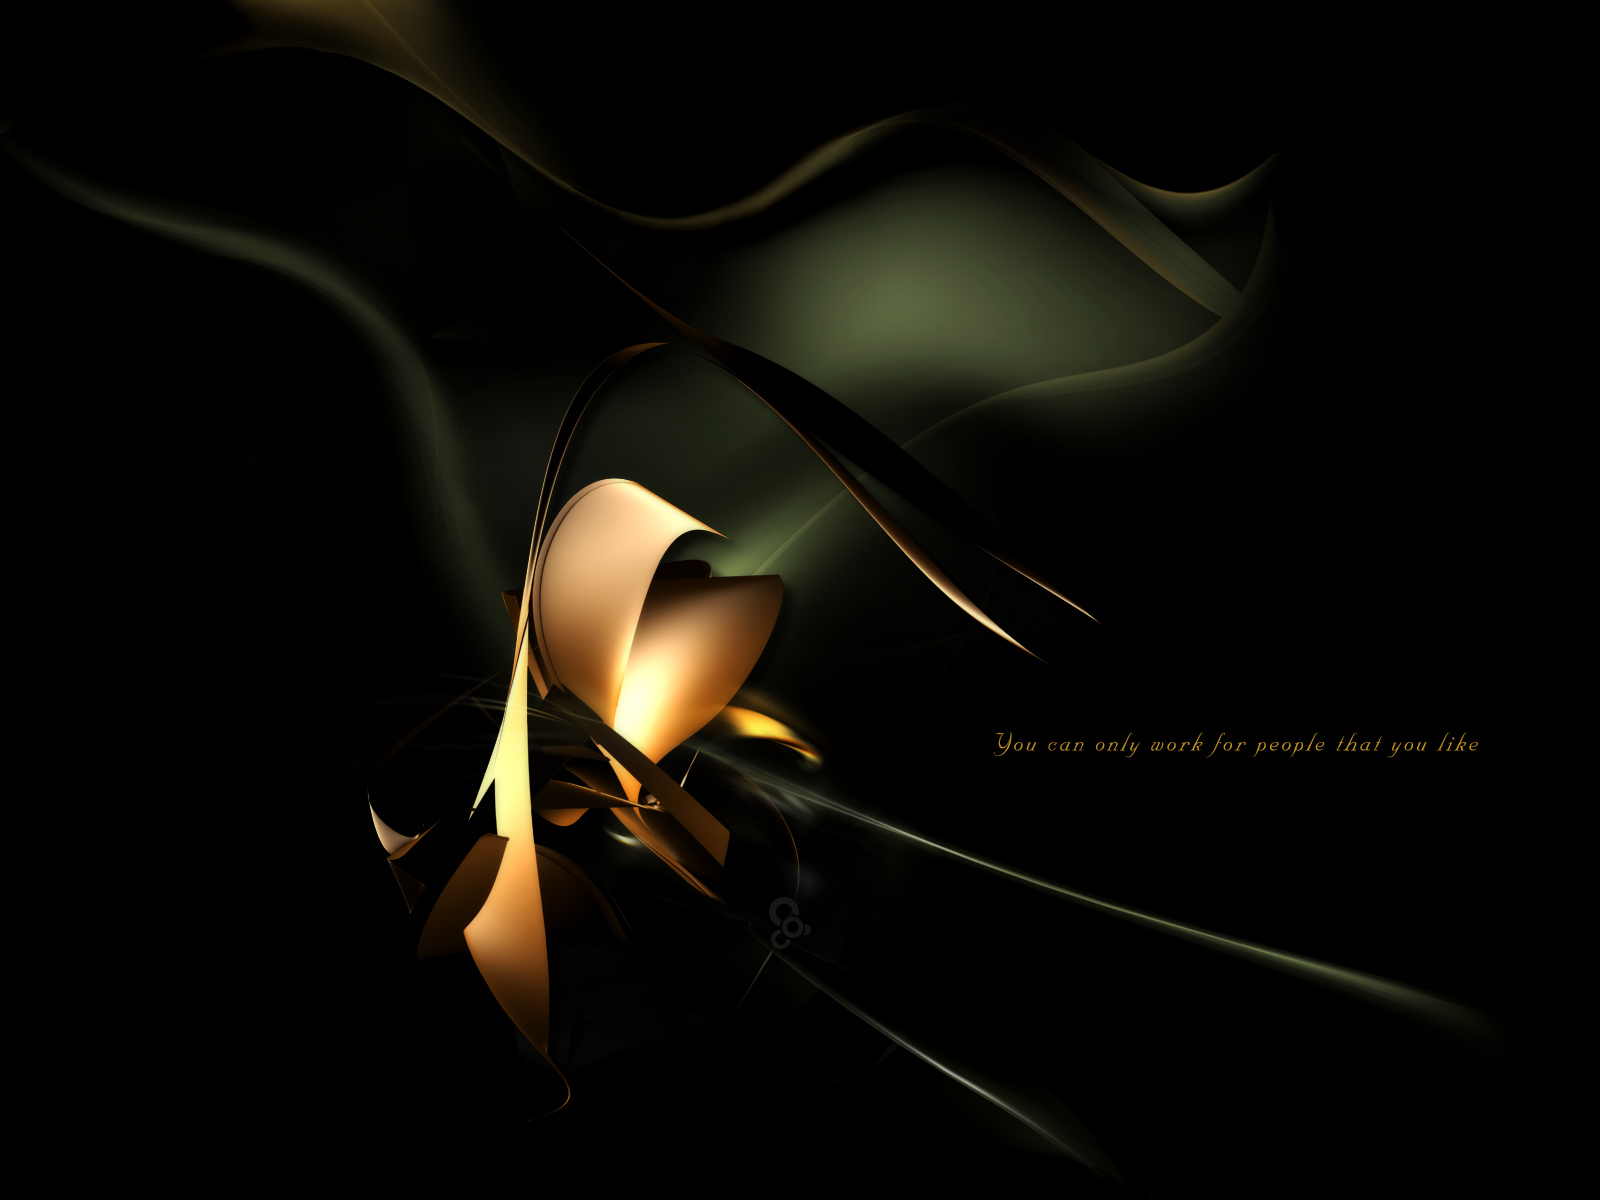 Black 3d Wallpapers: Kinds Of Wallpapers: 3D Black Wallpapers